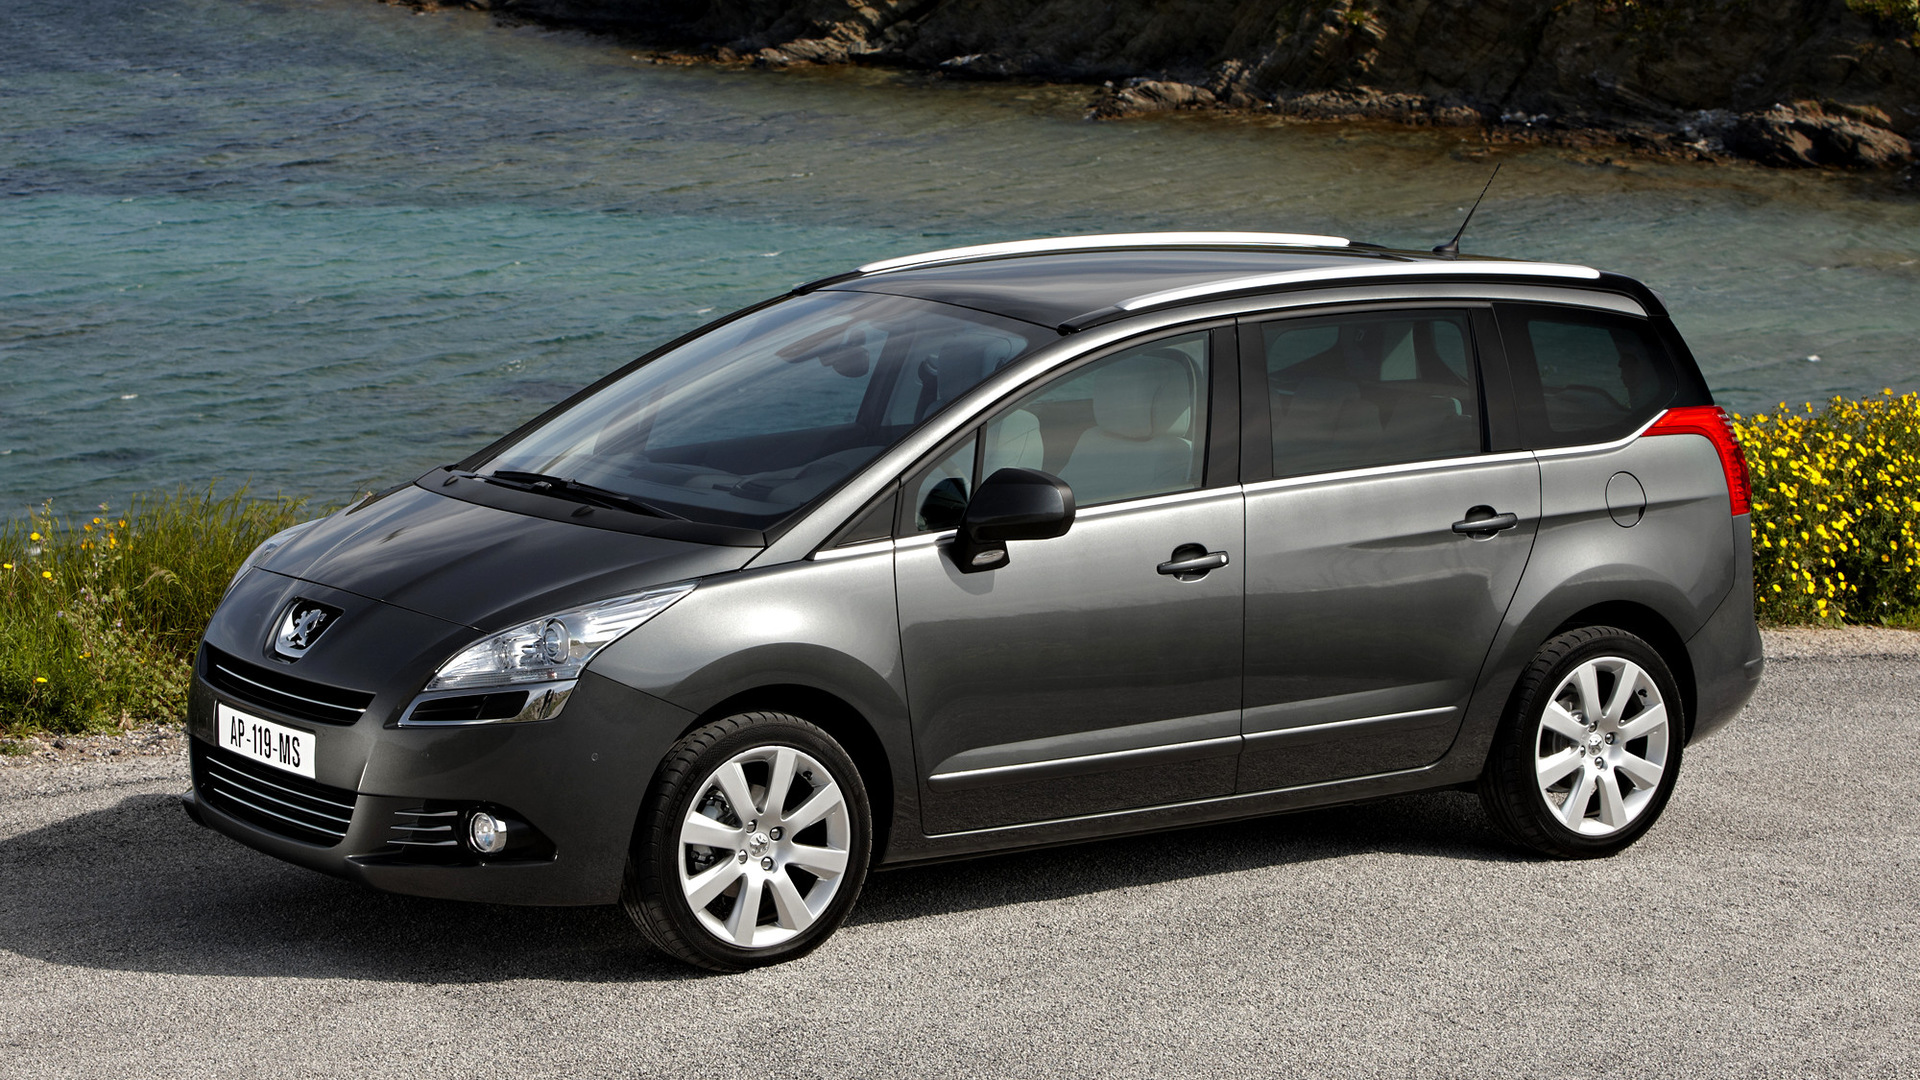 2009 peugeot 5008 pictures information and specs auto. Black Bedroom Furniture Sets. Home Design Ideas